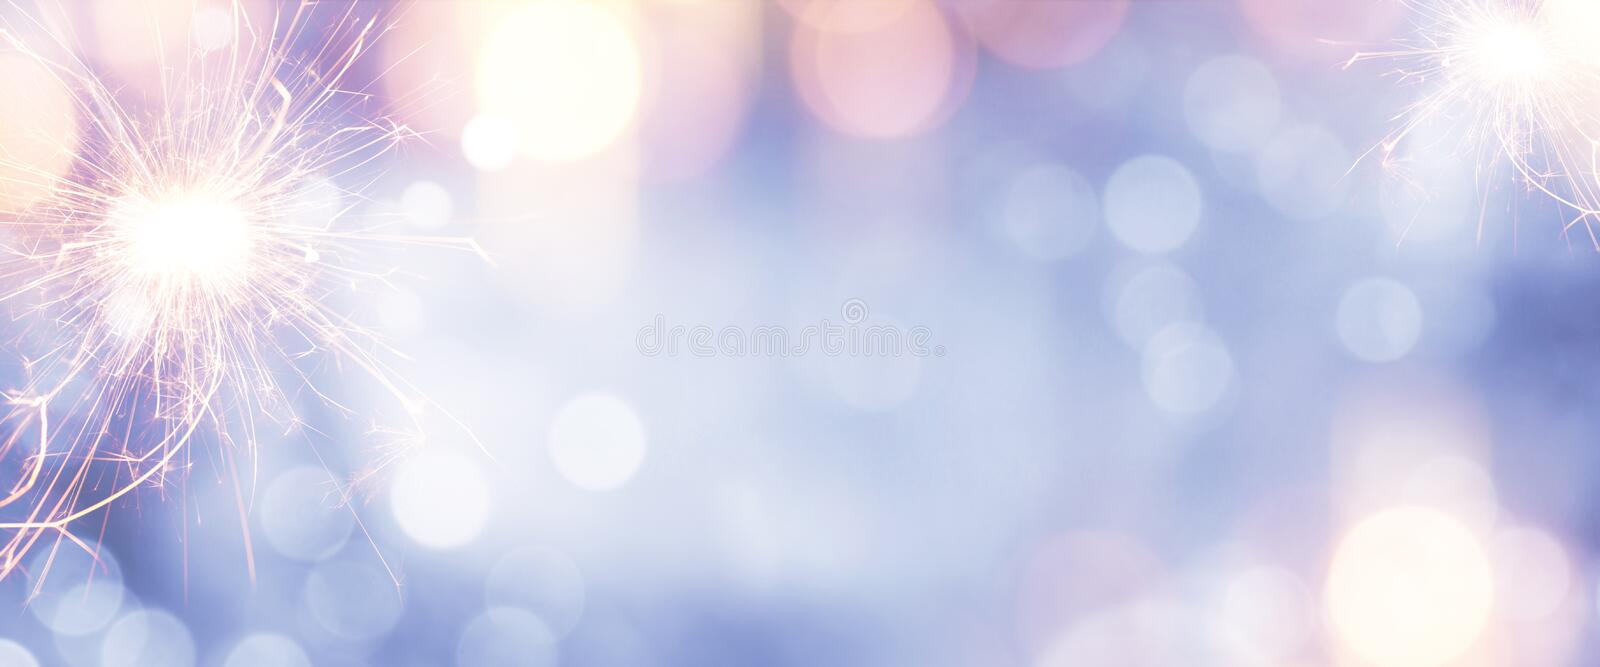 Colorful background with sparkler stock photo